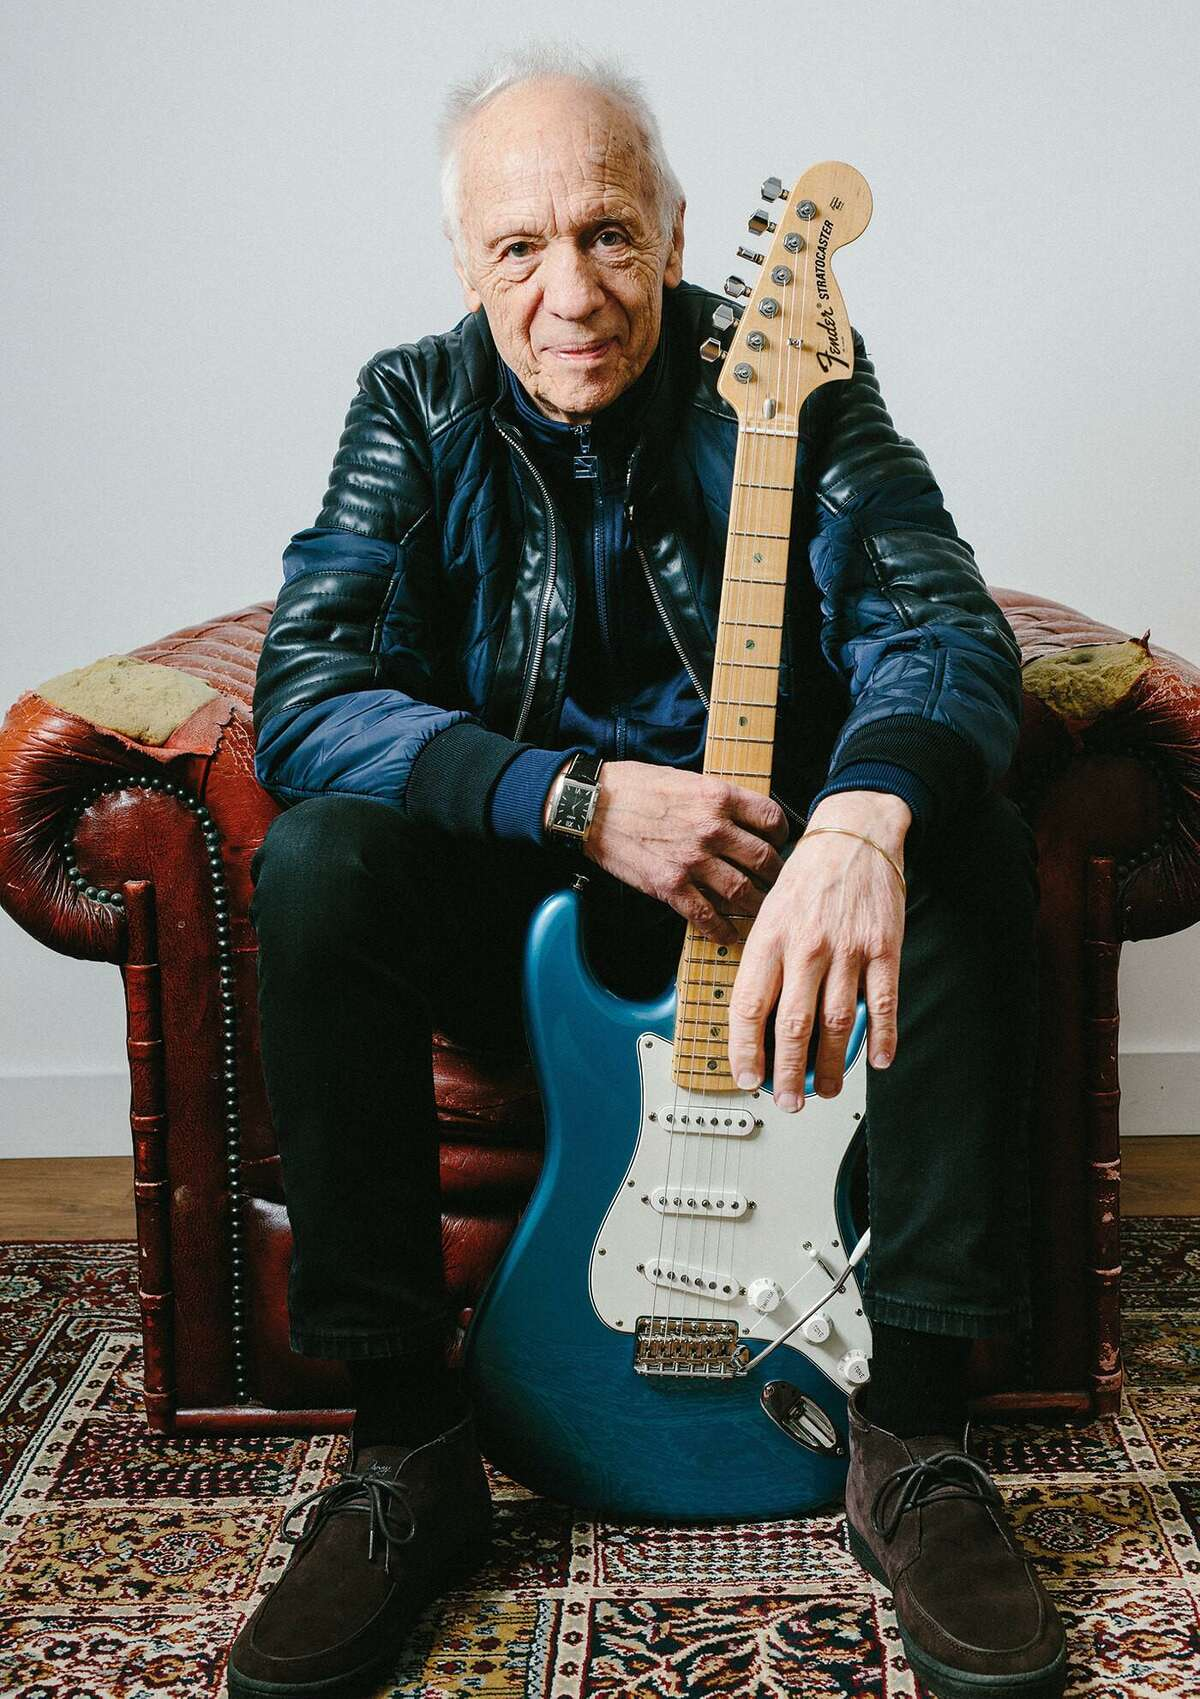 """Guitarist Robin Trower is set to perform Sept. 23 at the Ridgfield Playhouse. The iconic guitarist is one of the most influential rock musicians of all time. His mesmerizing style made him one of Britain's hottest guitarists. Joining Procol Harum right as they were invading 1960's radio with their moody, classical-meets-soul-classic, """"A Whiter Shade of Pale."""" Trower made his presence felt on six of the band's albums before breaking out as a solo artist and eventually building his own trio. To reserve your socially distanced seats to see Robin Trower in Ridgefield, call the box office at 203-438-5795."""